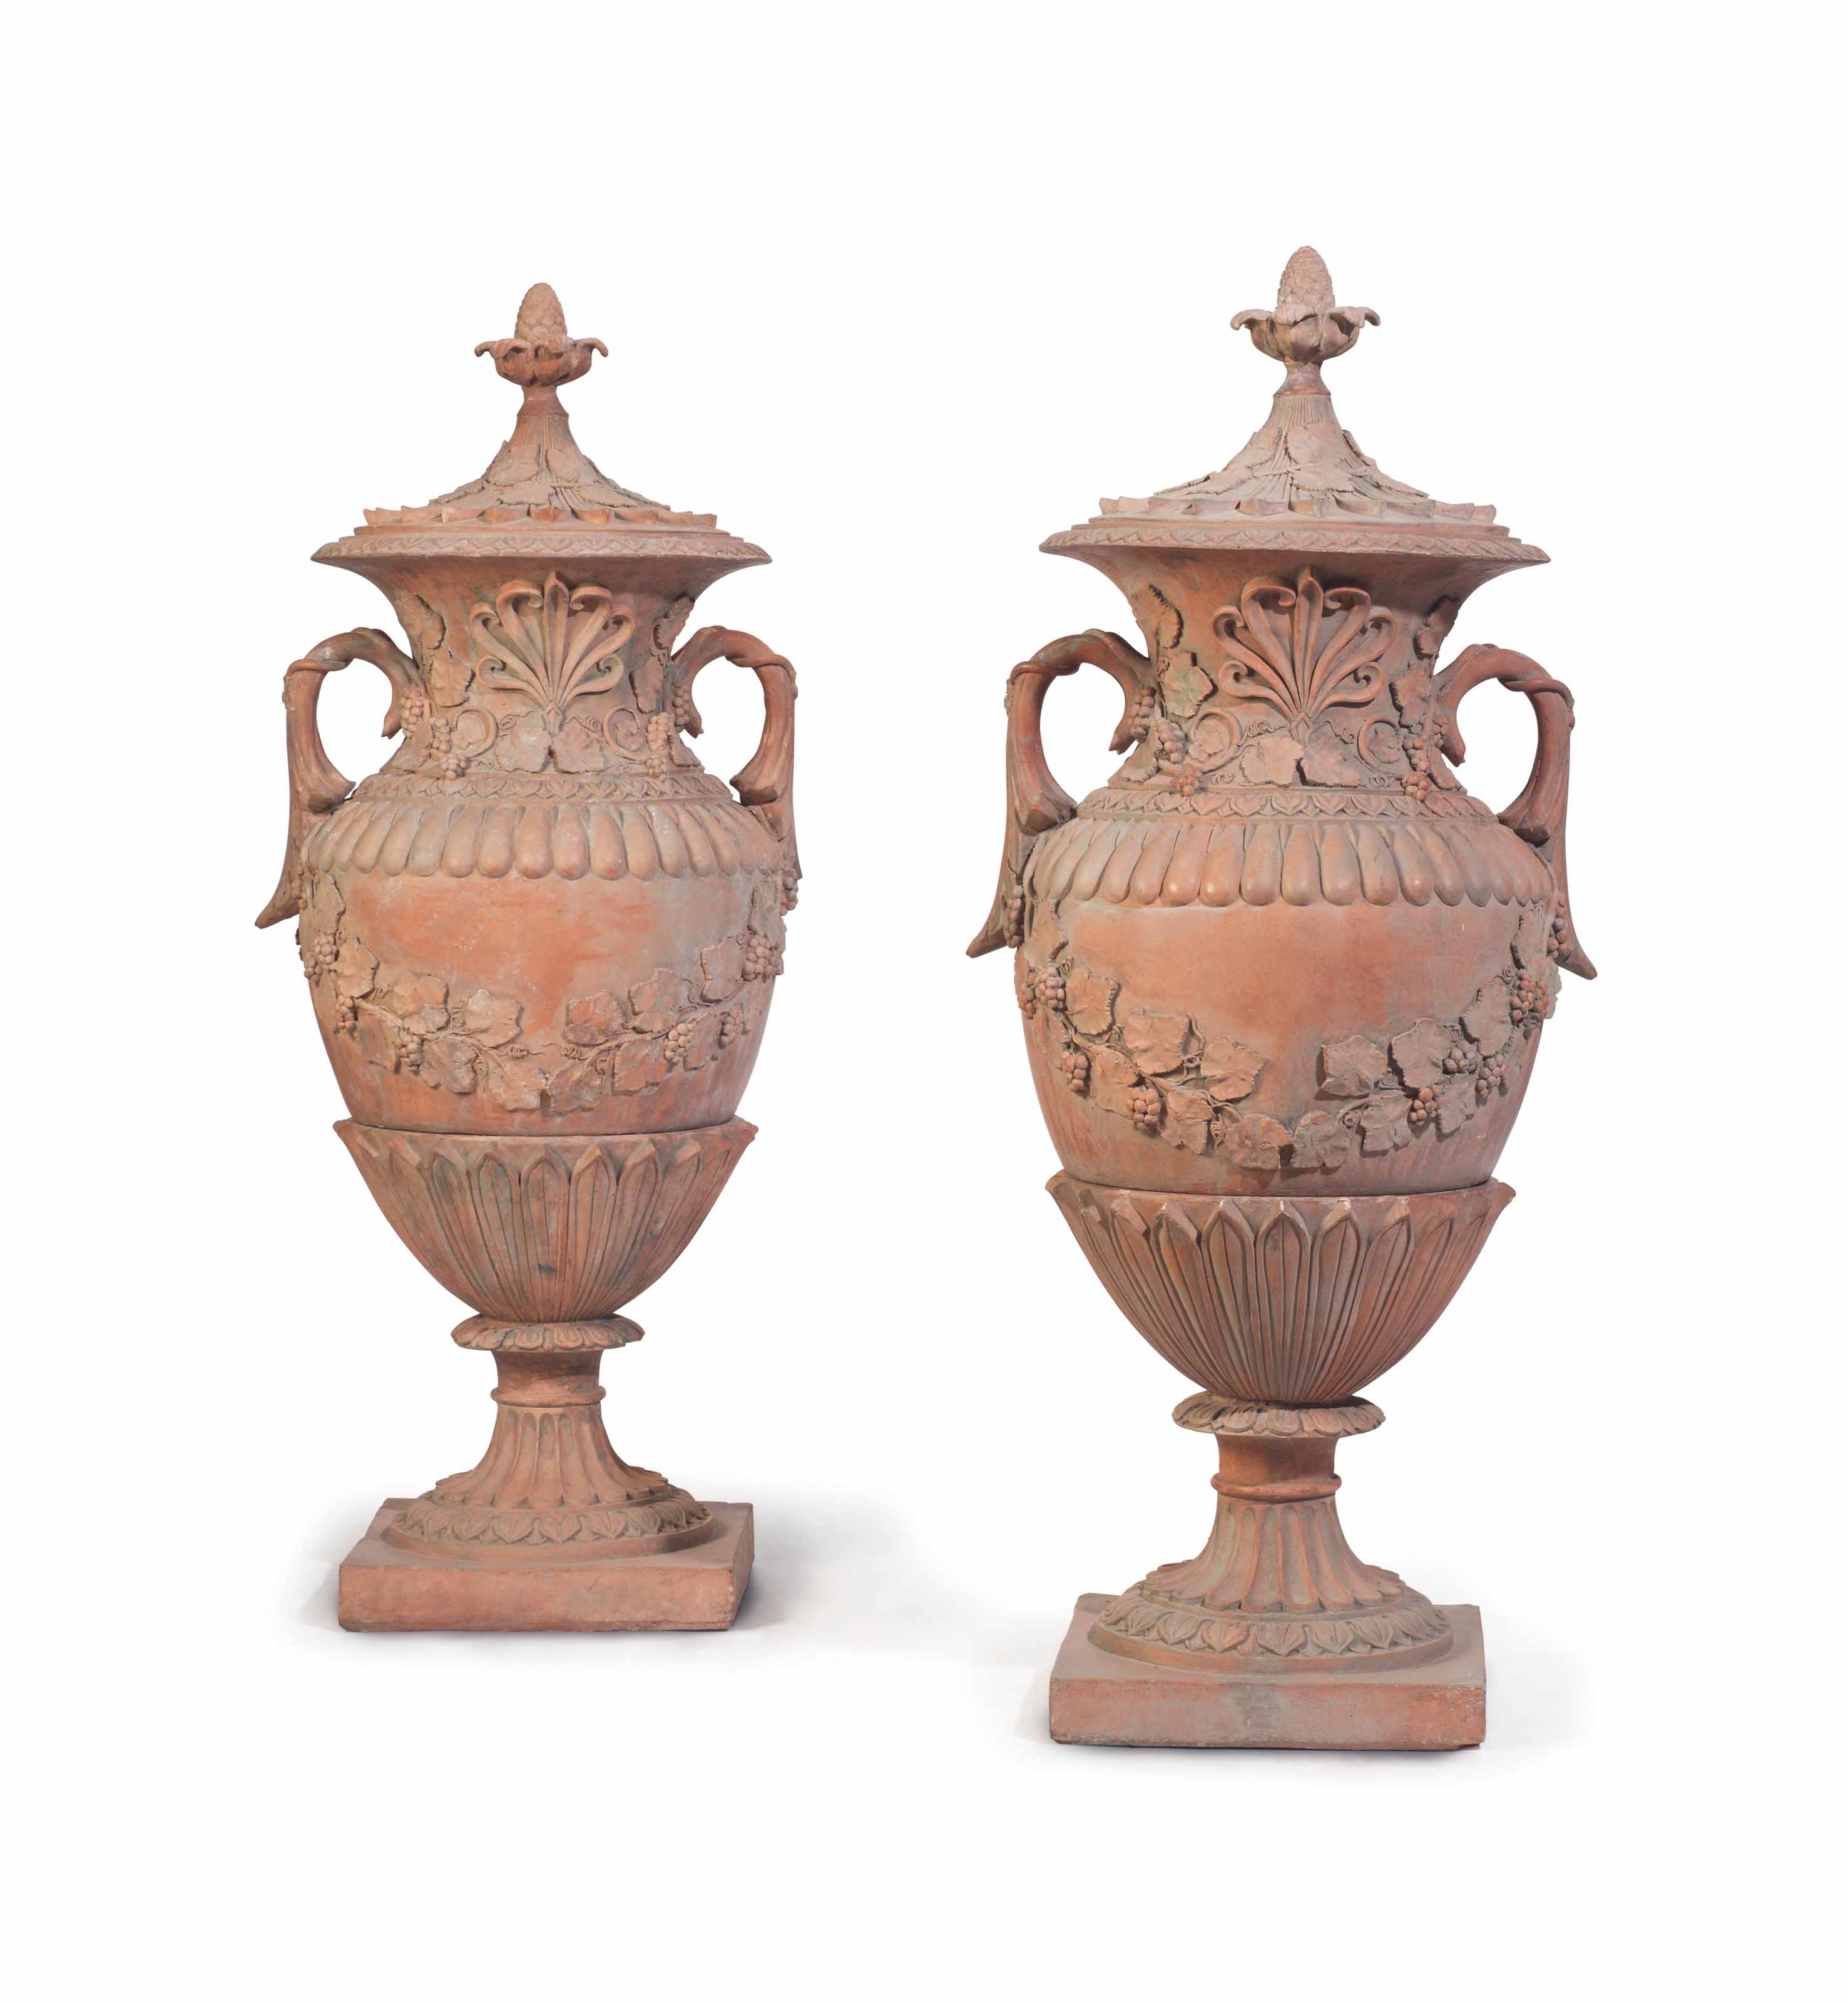 A PAIR OF TERRACOTTA VASES AND